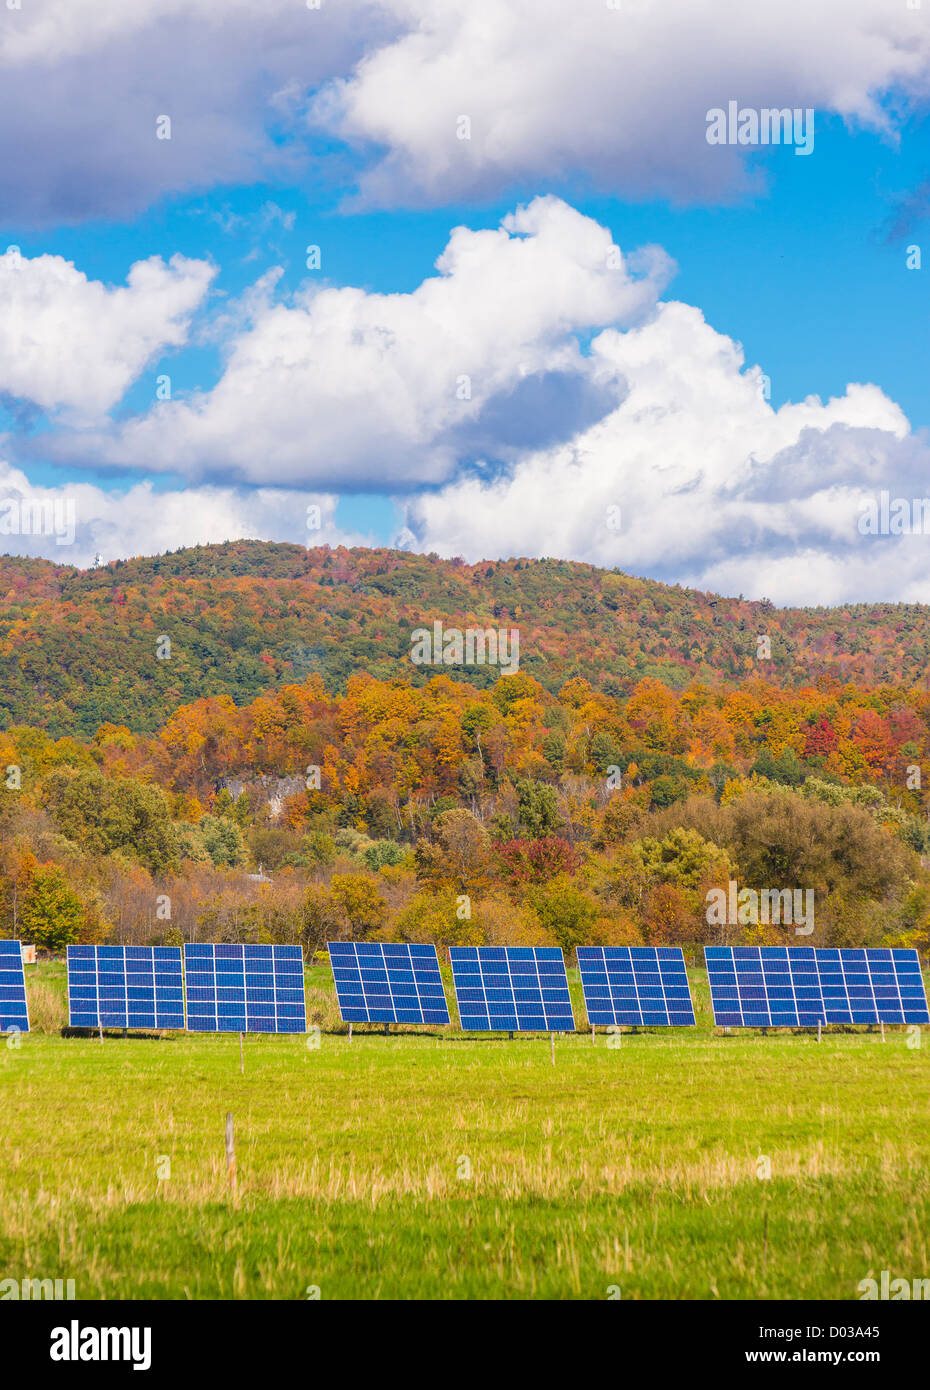 HINESBURG, VERMONT, USA - Solar panels for electrical power on farm land. - Stock Image